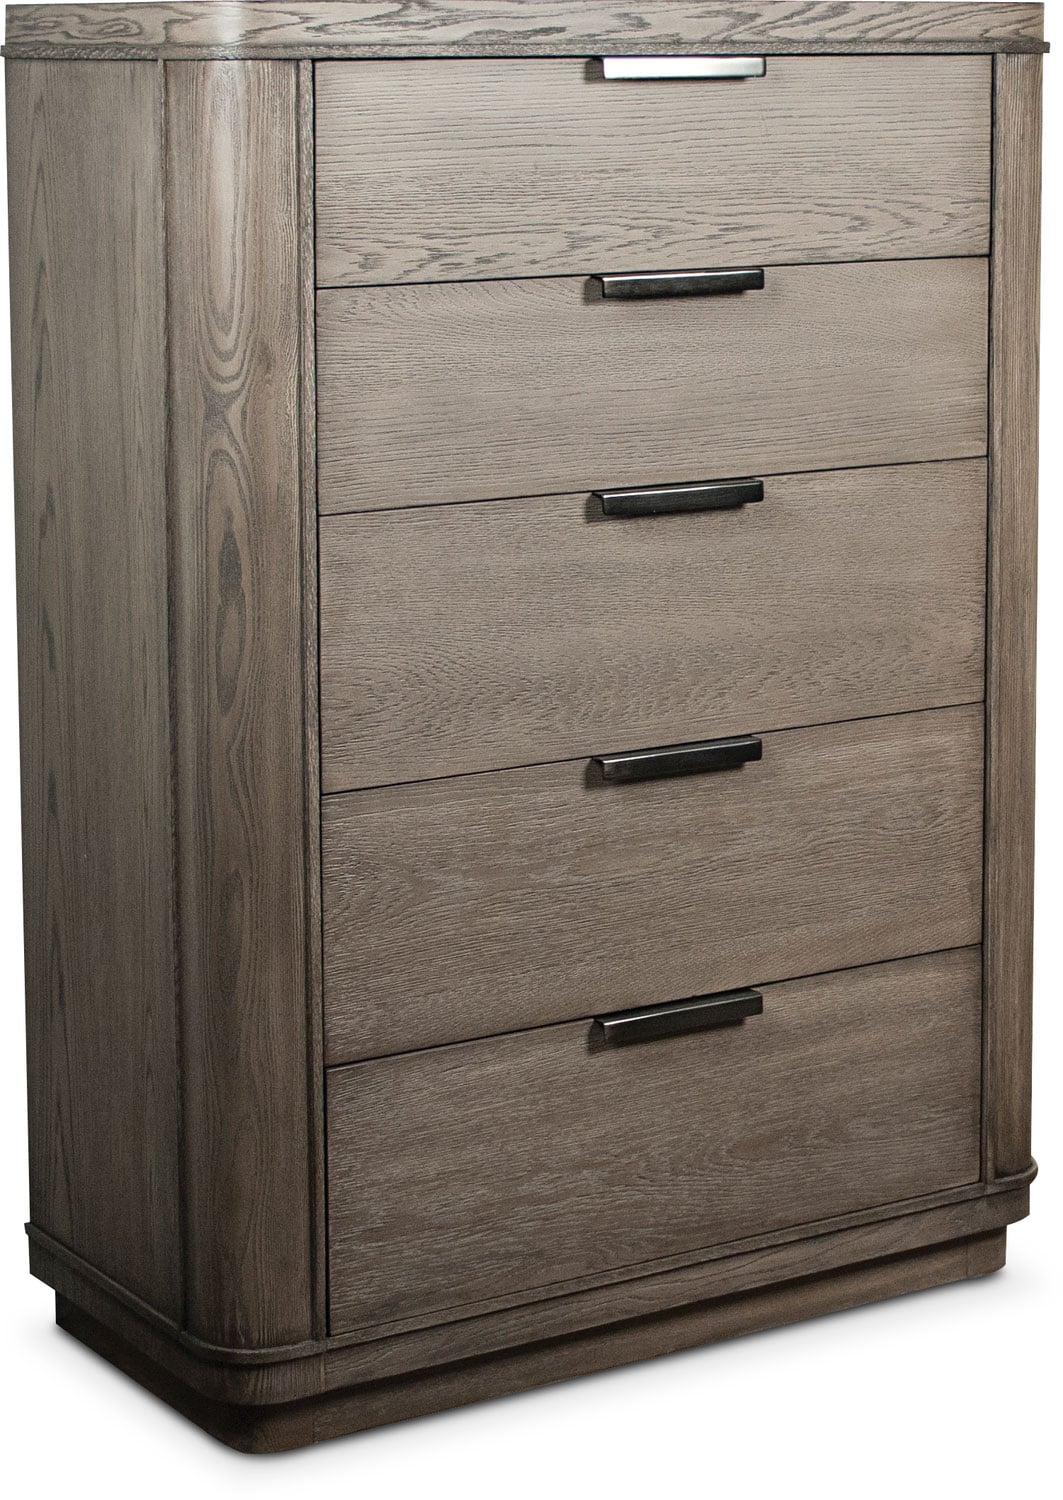 Bedroom Furniture - Malibu Chest